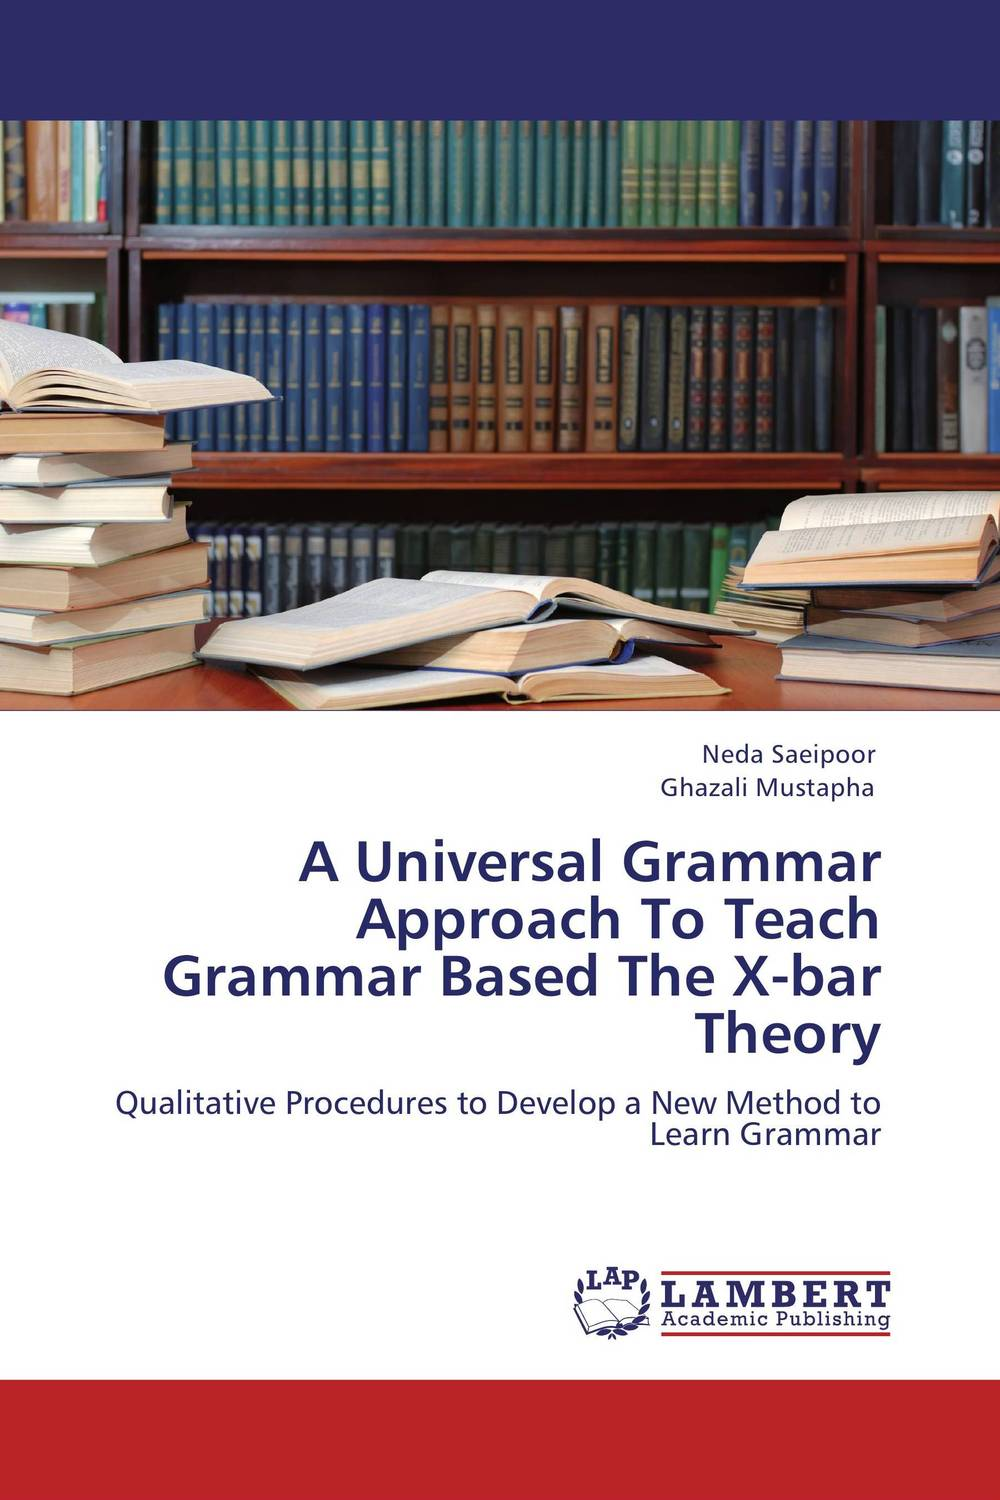 A Universal Grammar Approach To Teach Grammar Based The X-bar Theory a study on english language proficiency of efl learners in bangladesh